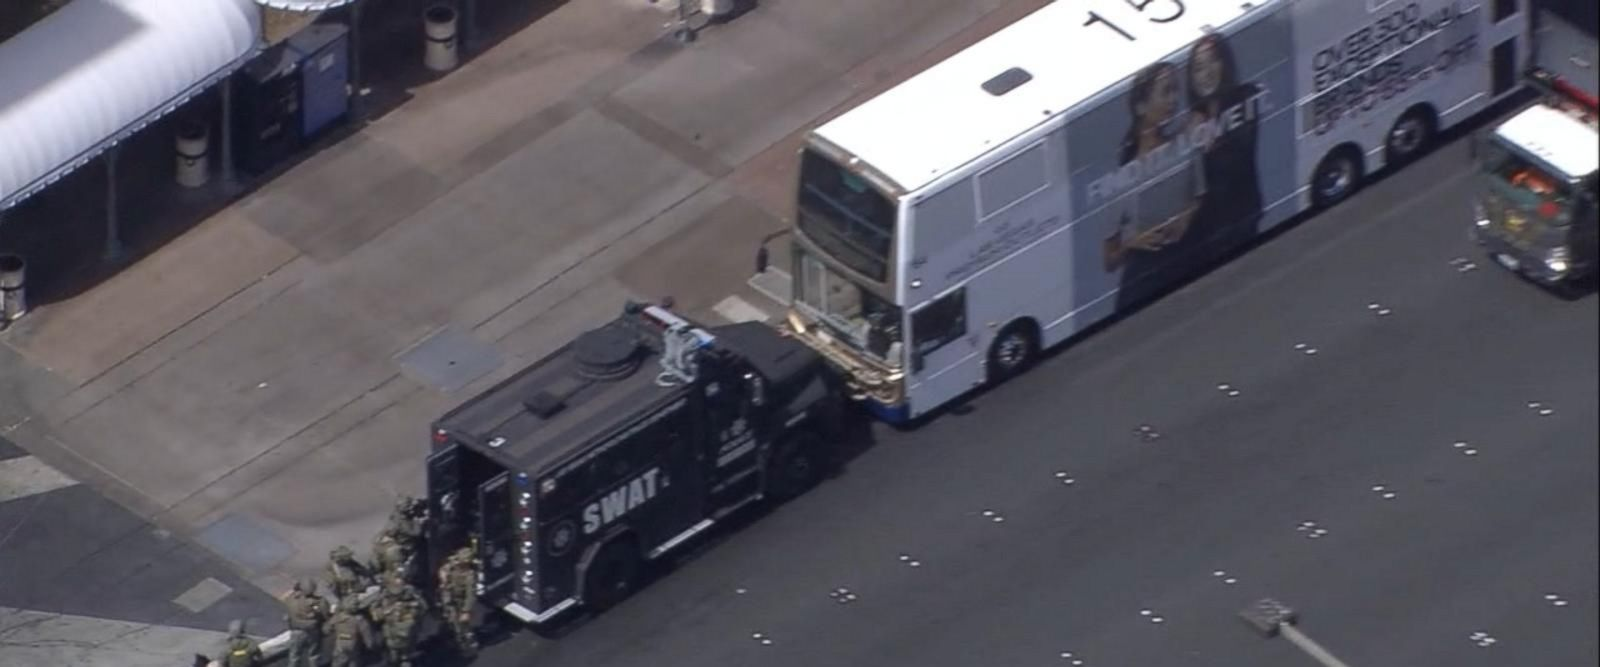 VIDEO: Tense moments in Las Vegas after an armed robbery at the Belagio hotel, and a deadly shooting on a bus